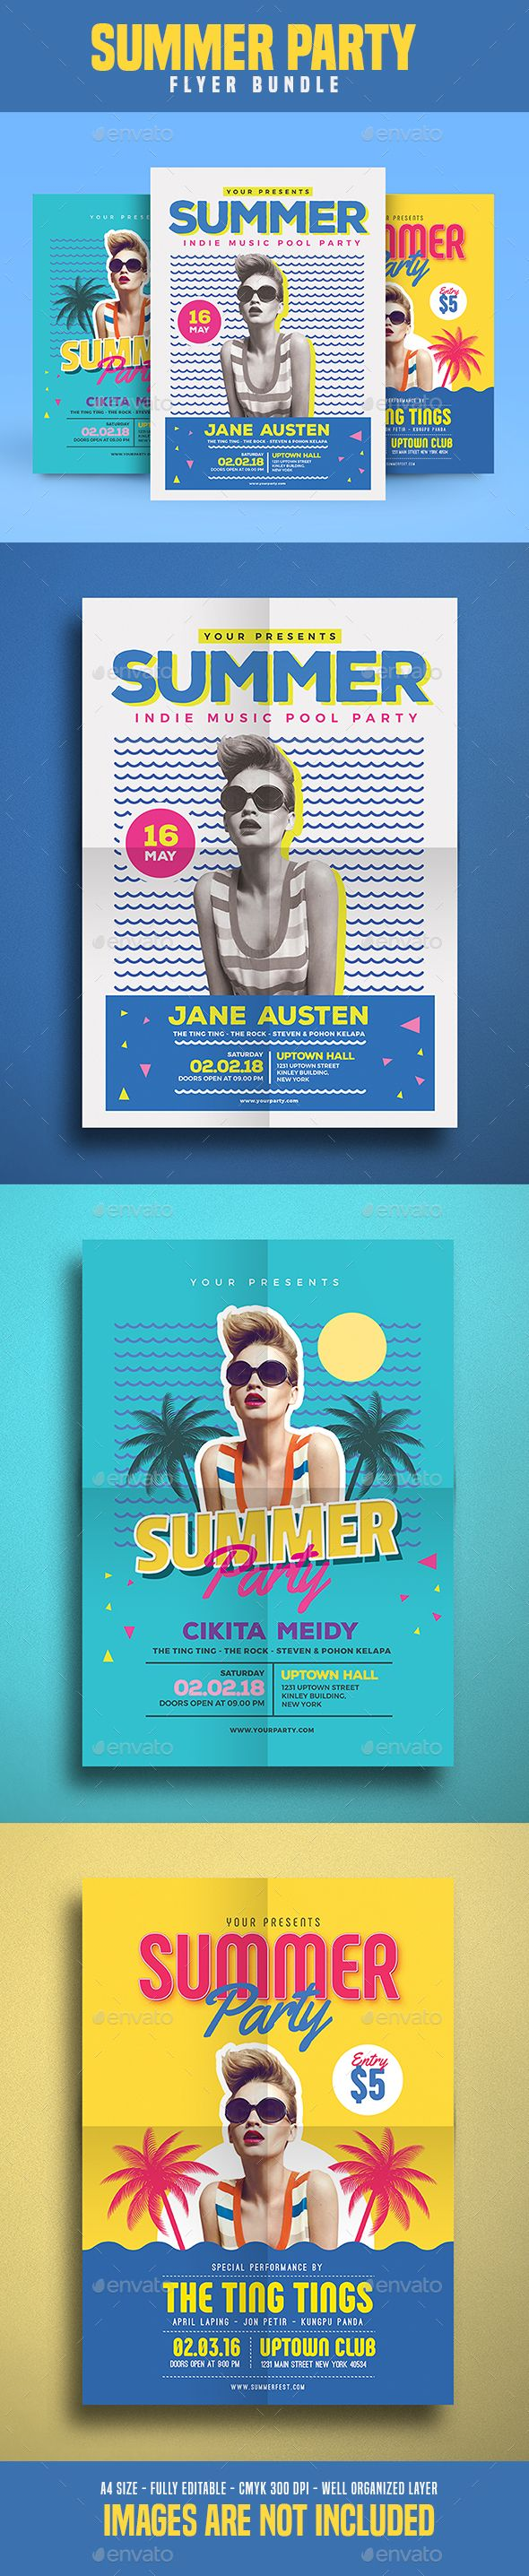 Summer Party Flyer Templates PSD Bundle. Download here: https://graphicriver.net/item/summer-party-flyer-bundle-vol_02/17624622?ref=ksioks